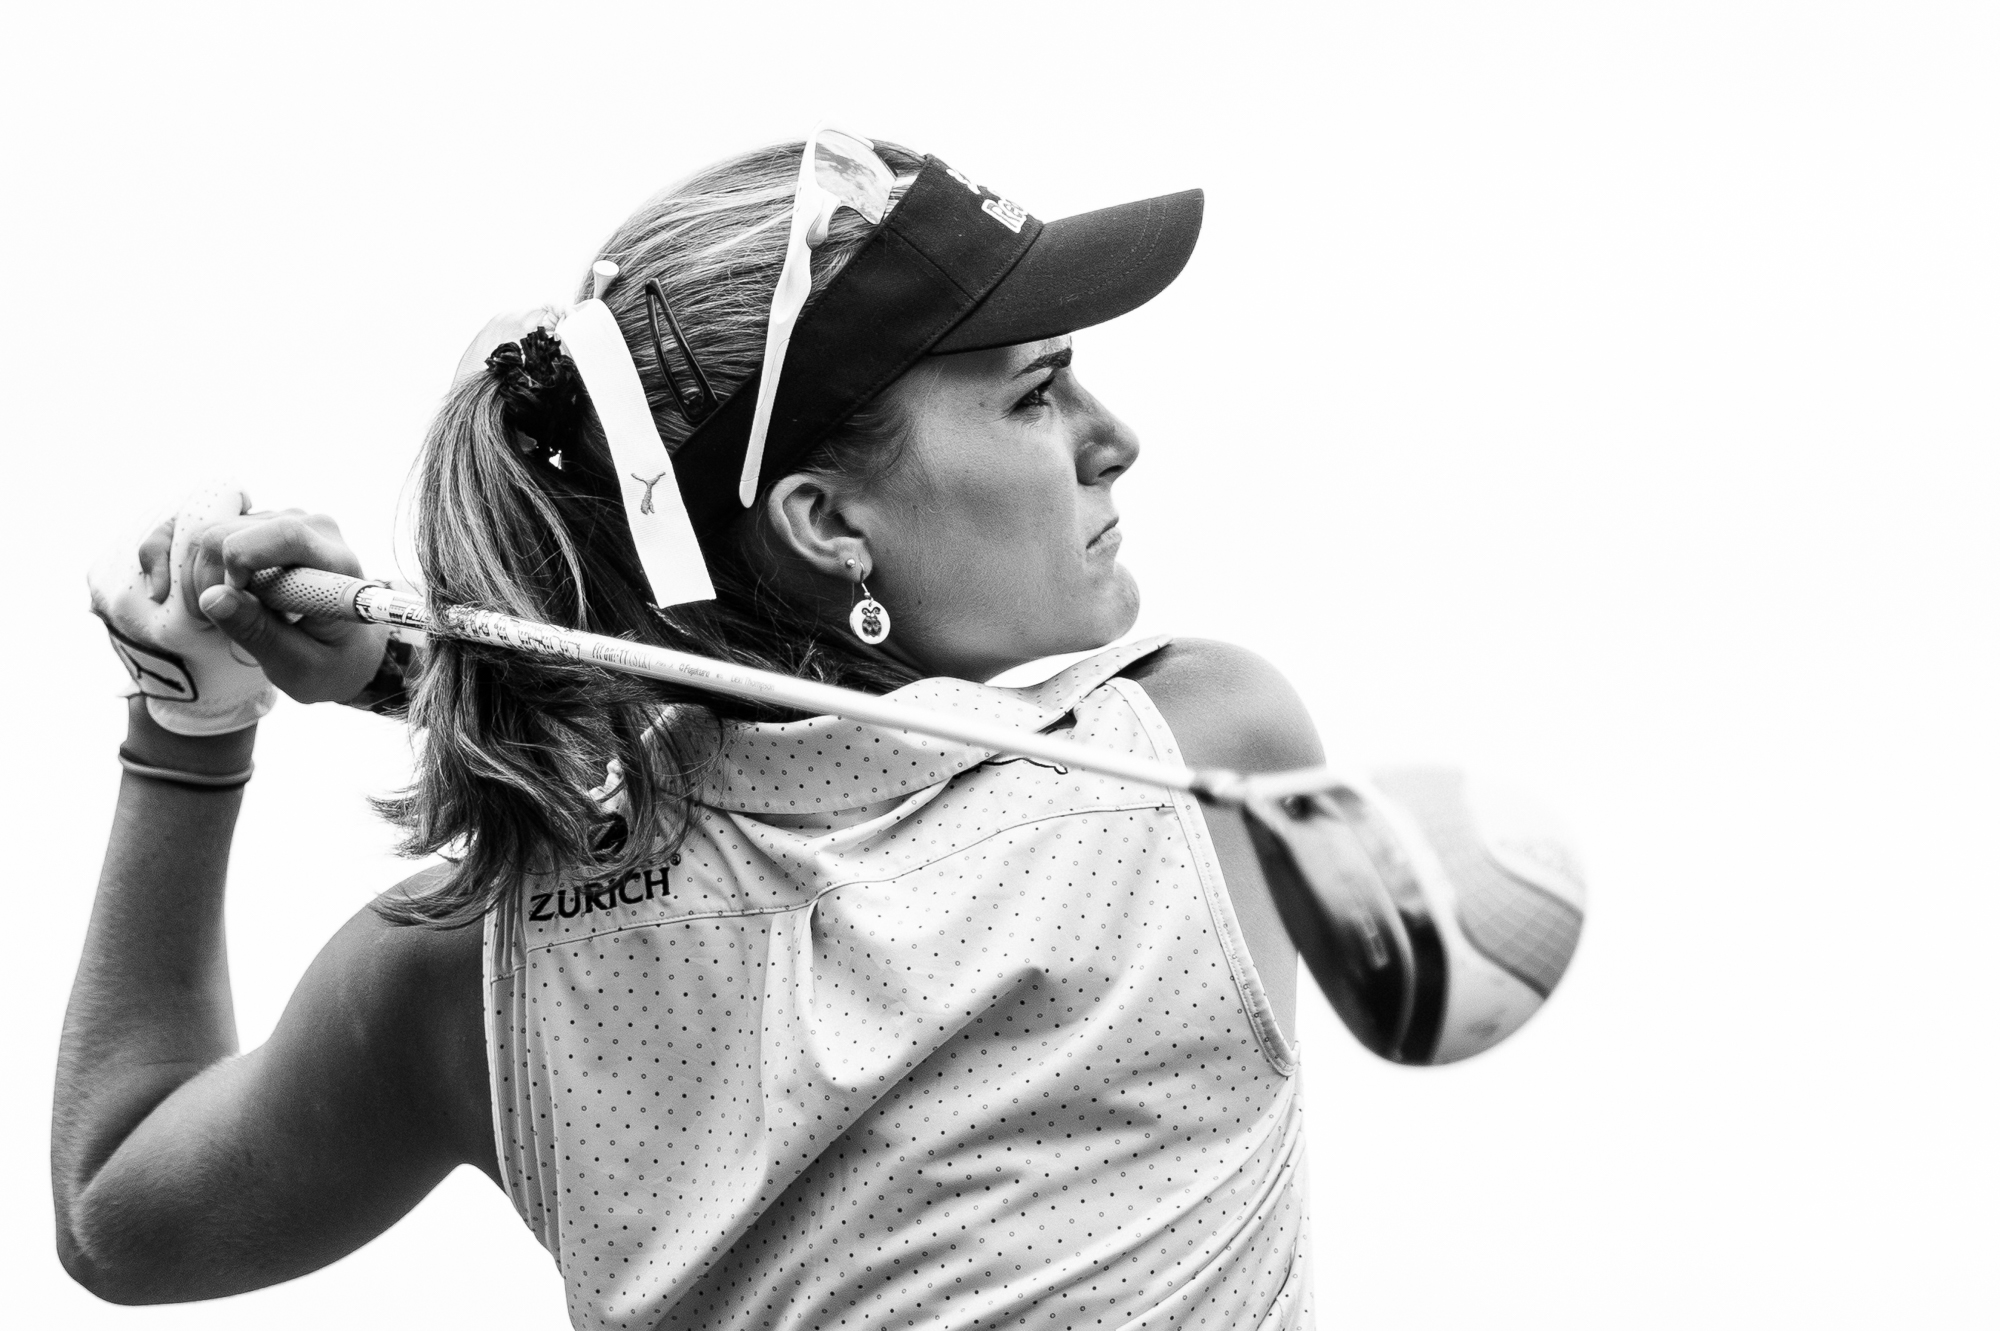 Golfer Lexi Thompson - Greg Mionske - Advertising and Editorial Photographer in Denver